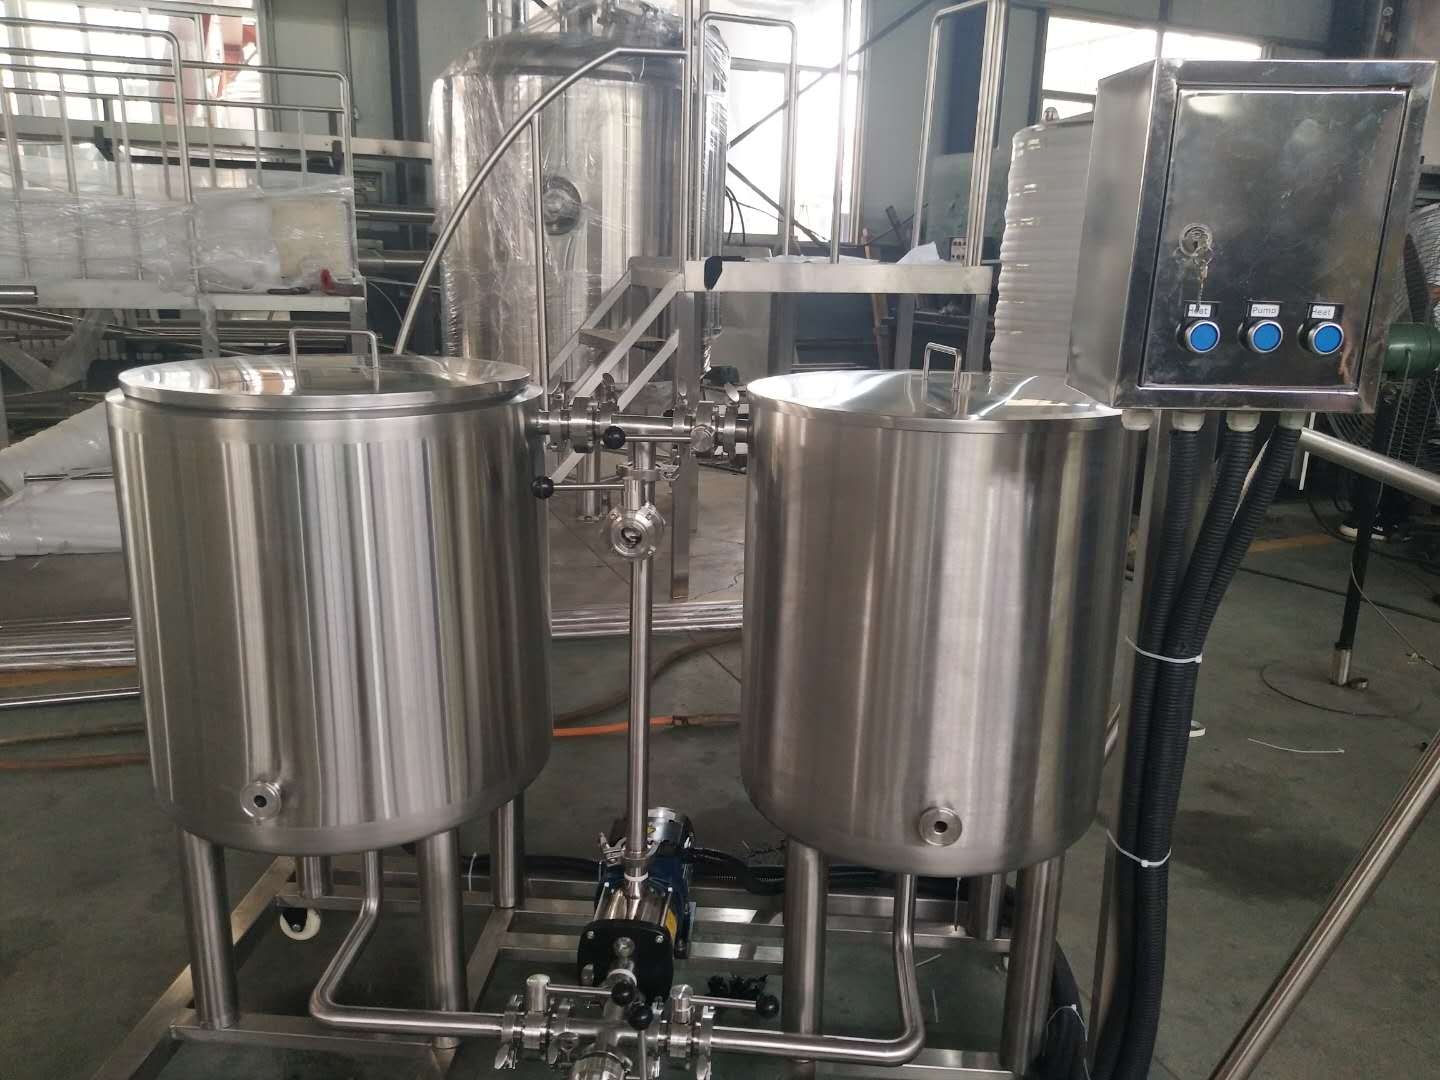 Belgium equipement needed for microbrewery of SUS304 from China manufacturer 2020 W1